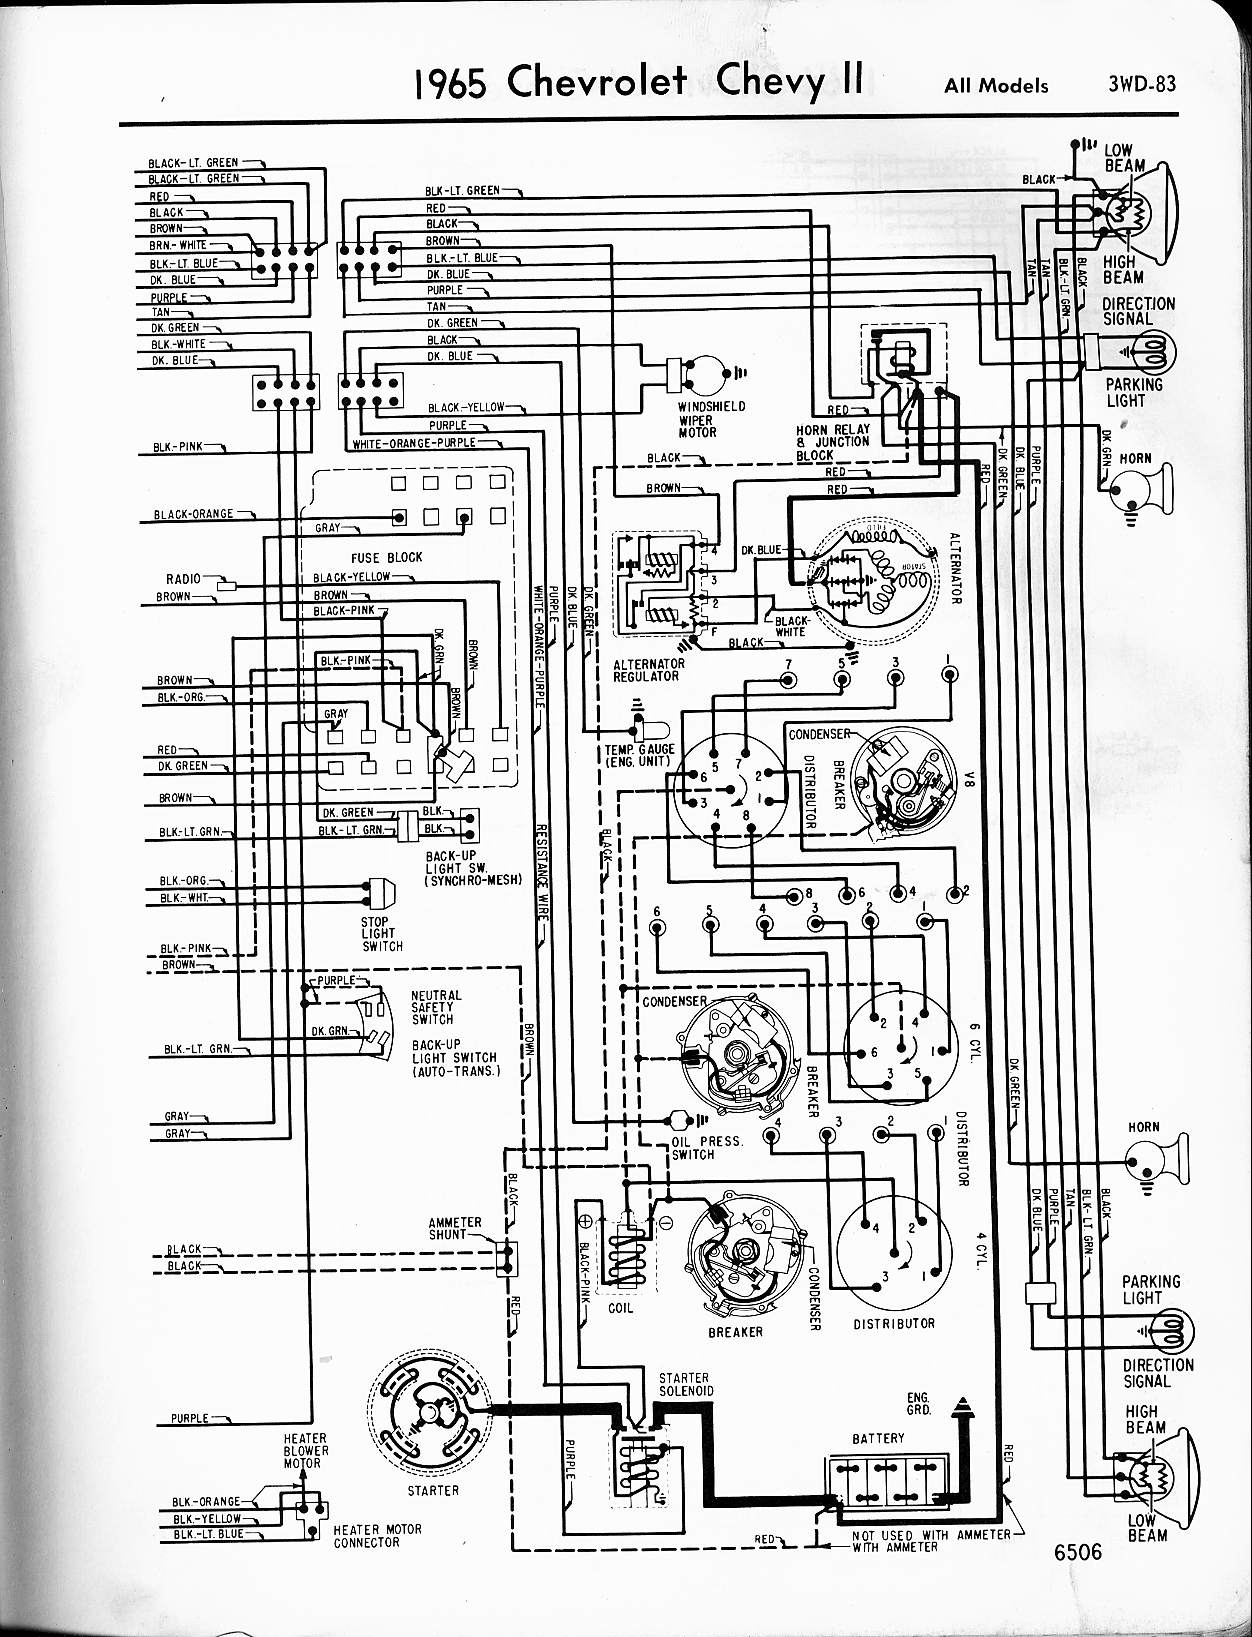 1964 Falcon V8 Ignition Wiring Diagram Car Diagrams Explained F100 Chevy Rh Wizard Com 1963 Ford